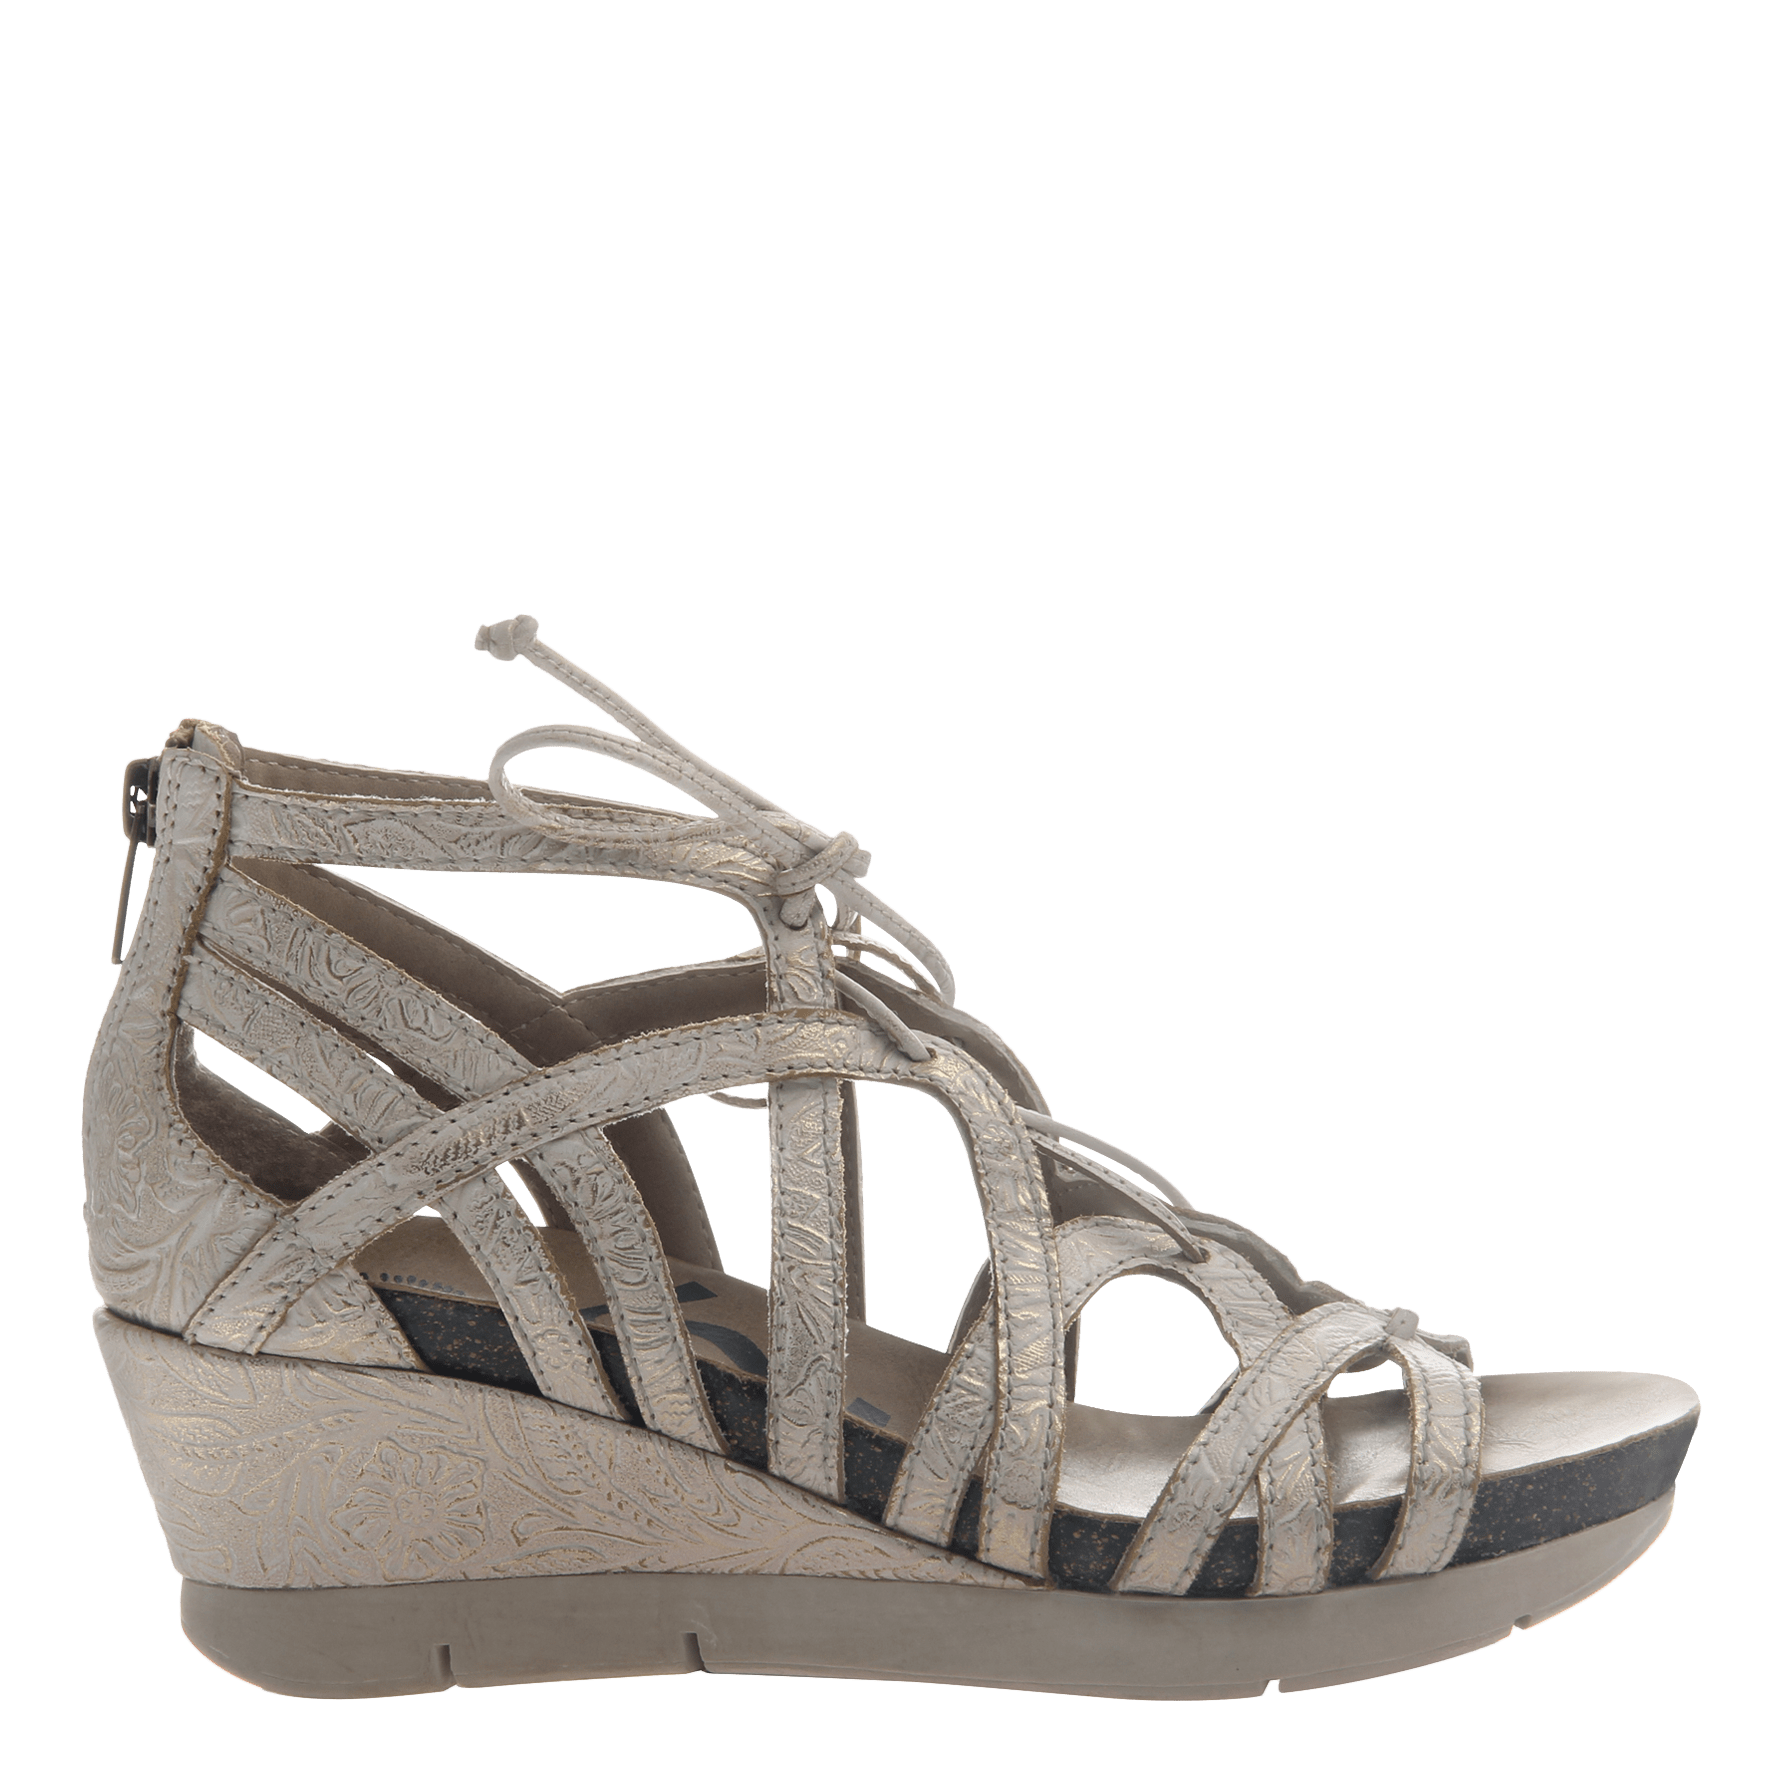 7585686e735 Nomadic Womens wedge gladiator sandal side view